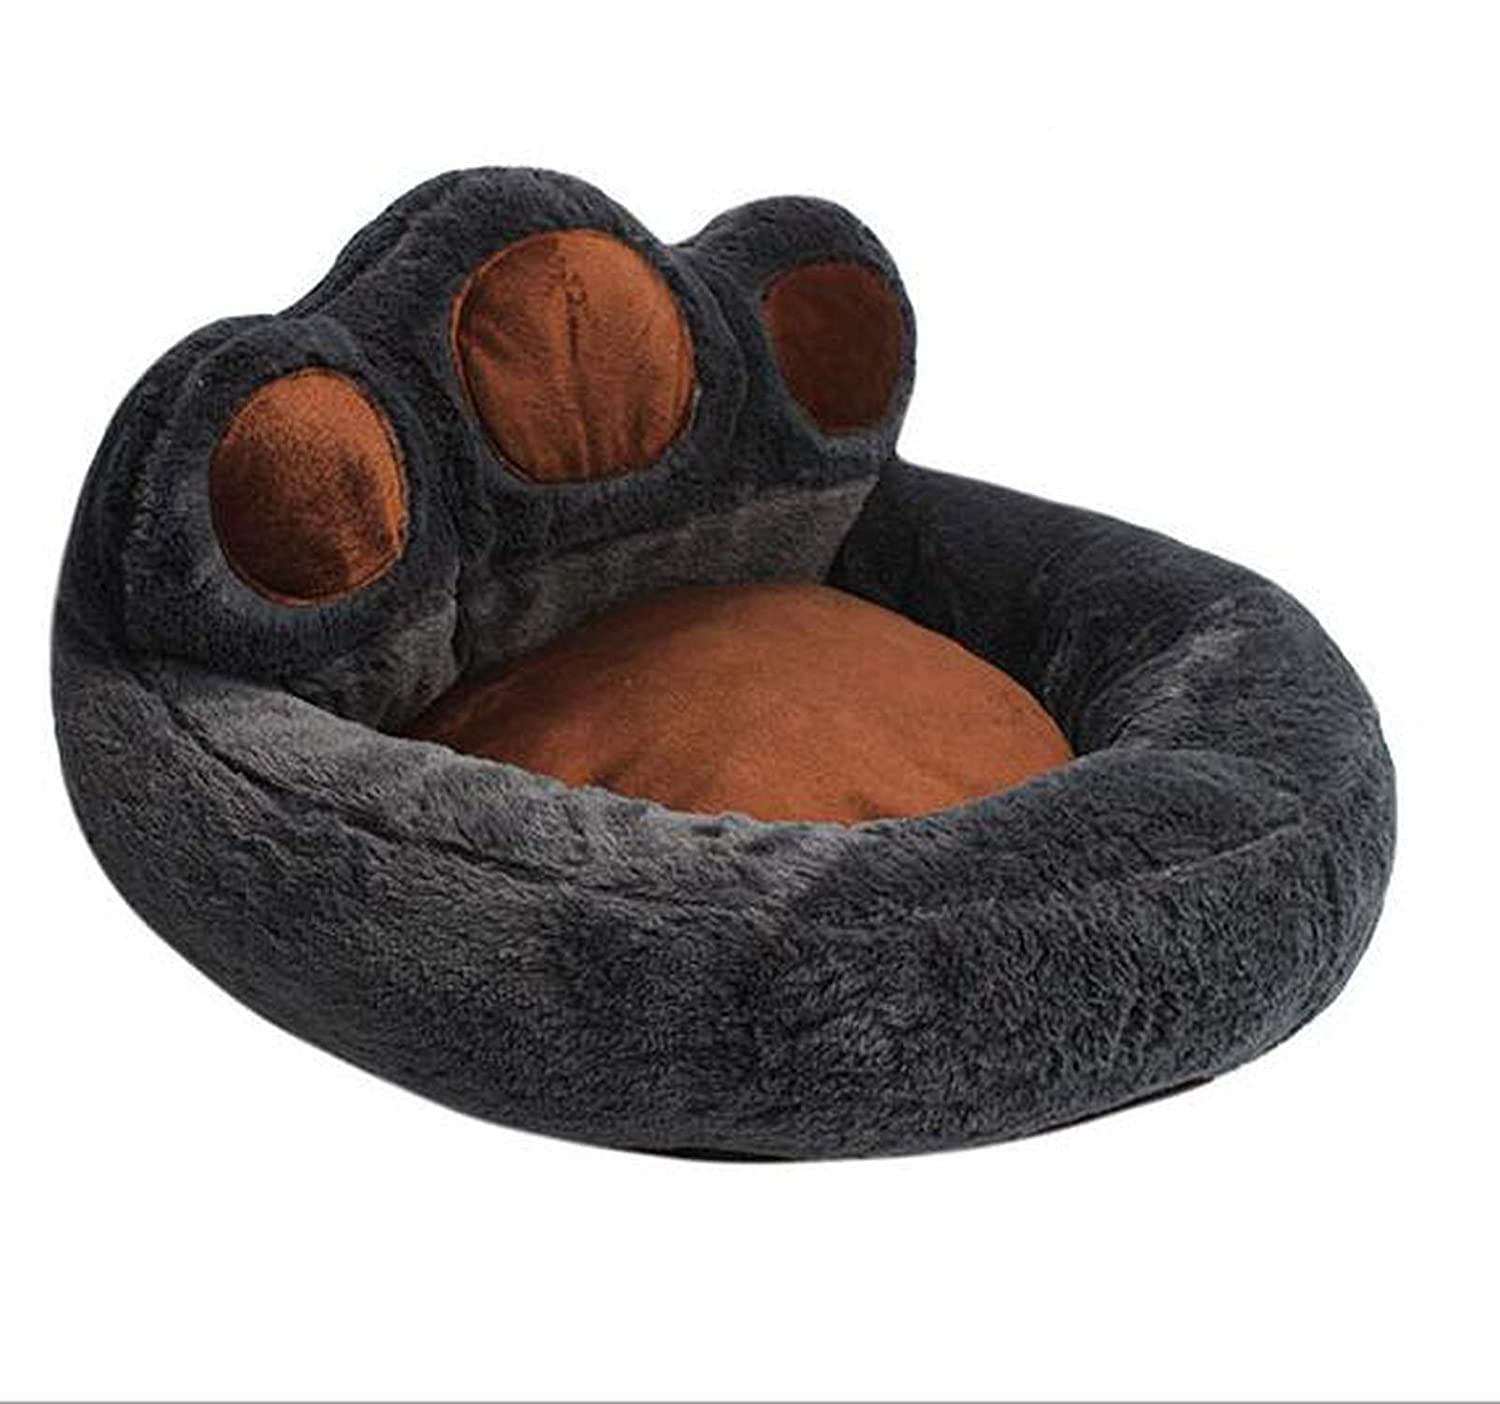 5 L for 10kg(6268cm)Creative Bear Footprint Washable Small Medium Large Luxury Dog Bed Kennel Cozy Soft Warm Pet Puppy Cat Dog House Nest,2,L for 10kg(6268cm)